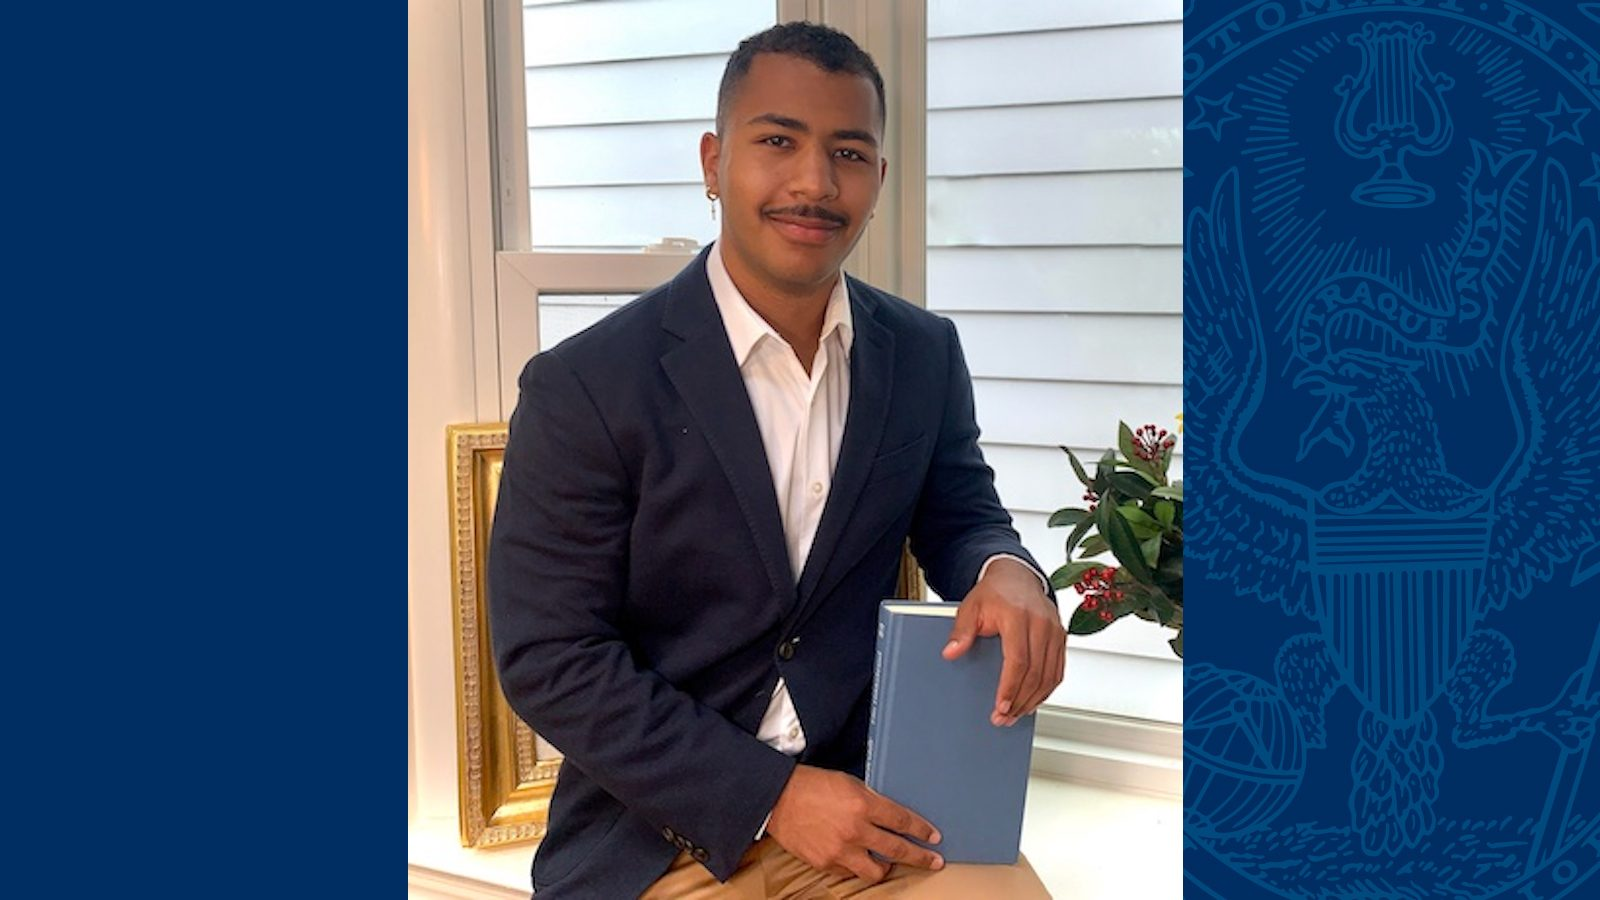 Isayah Henry wears a blazer and holds a book